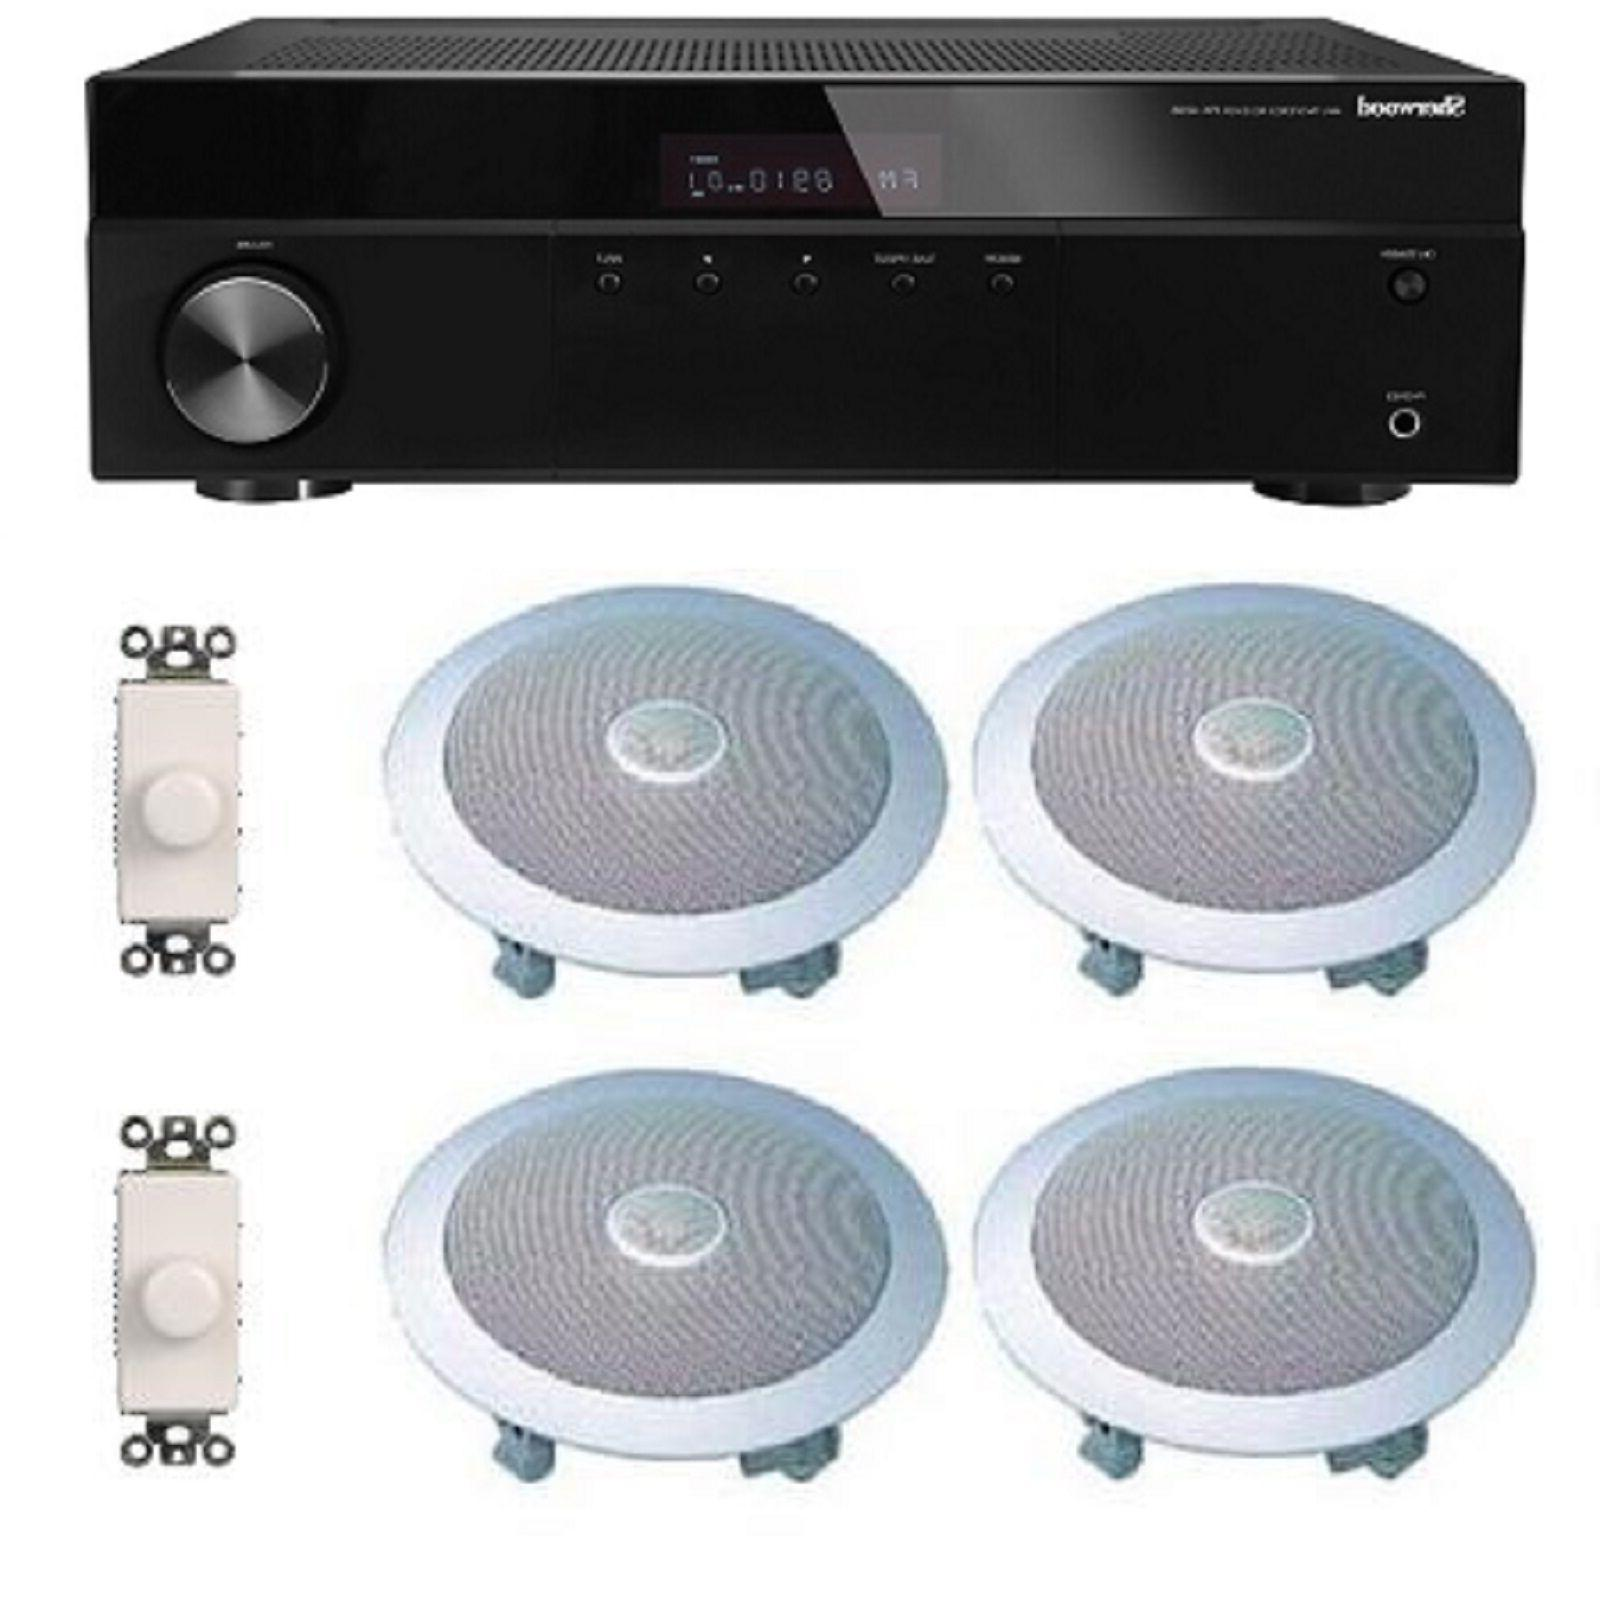 HOME AUDIO SOUND SYSTEM- FLUSH IN-CEILING SPEAKERS FOR 2+ RO